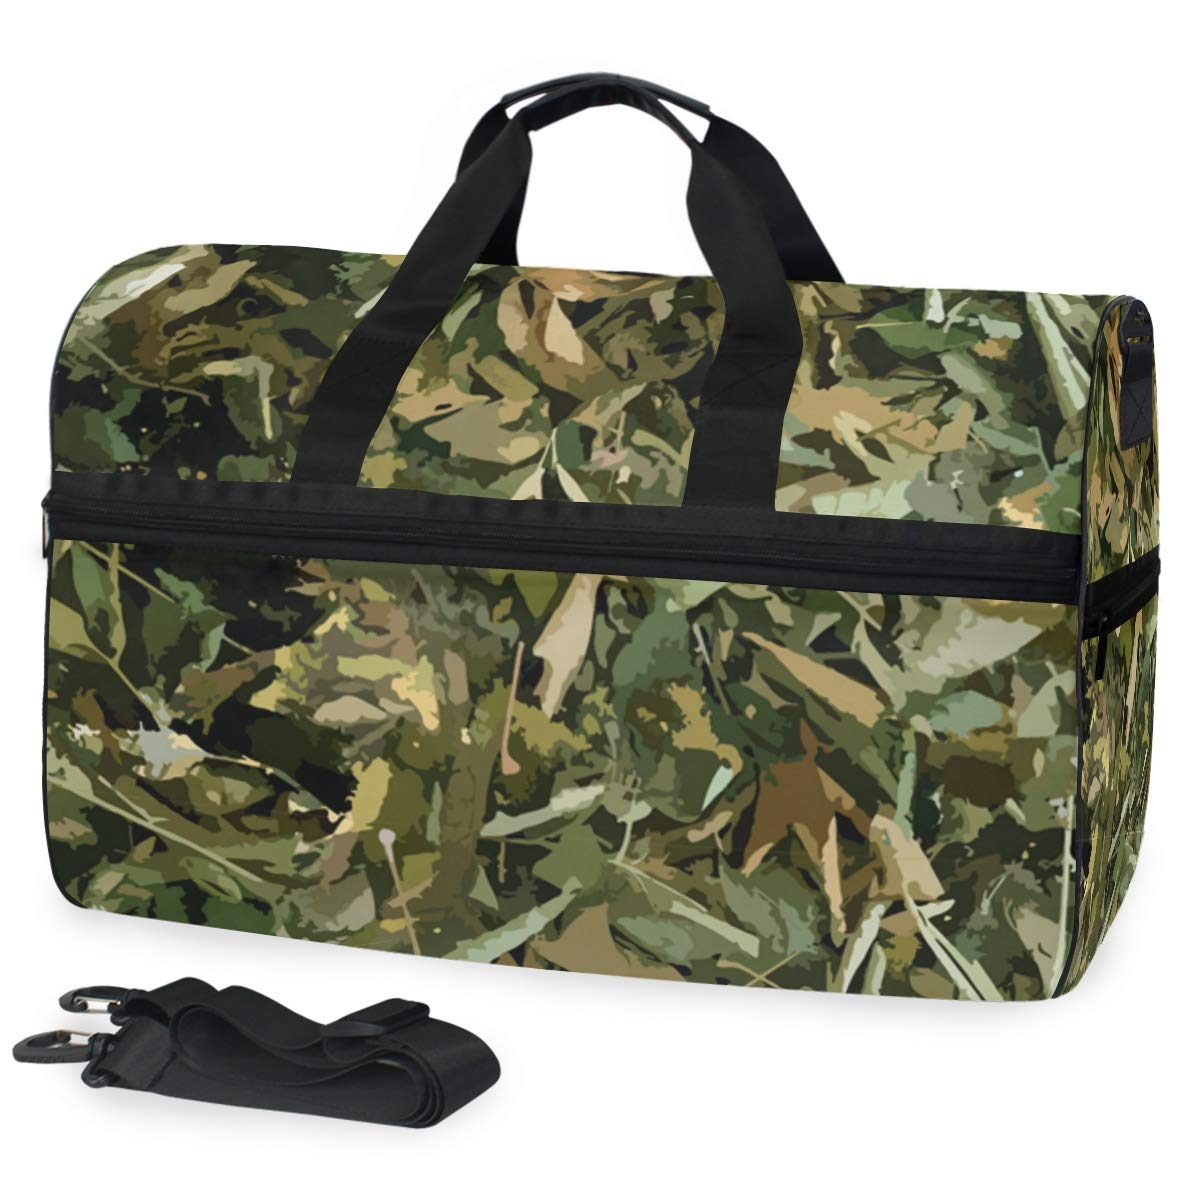 Large Capacity Travel Bag Seamless Pattern Woodland Camo Color Military Duffel Bag Gym Shoe Compartment Sport Tote Bags Handbag